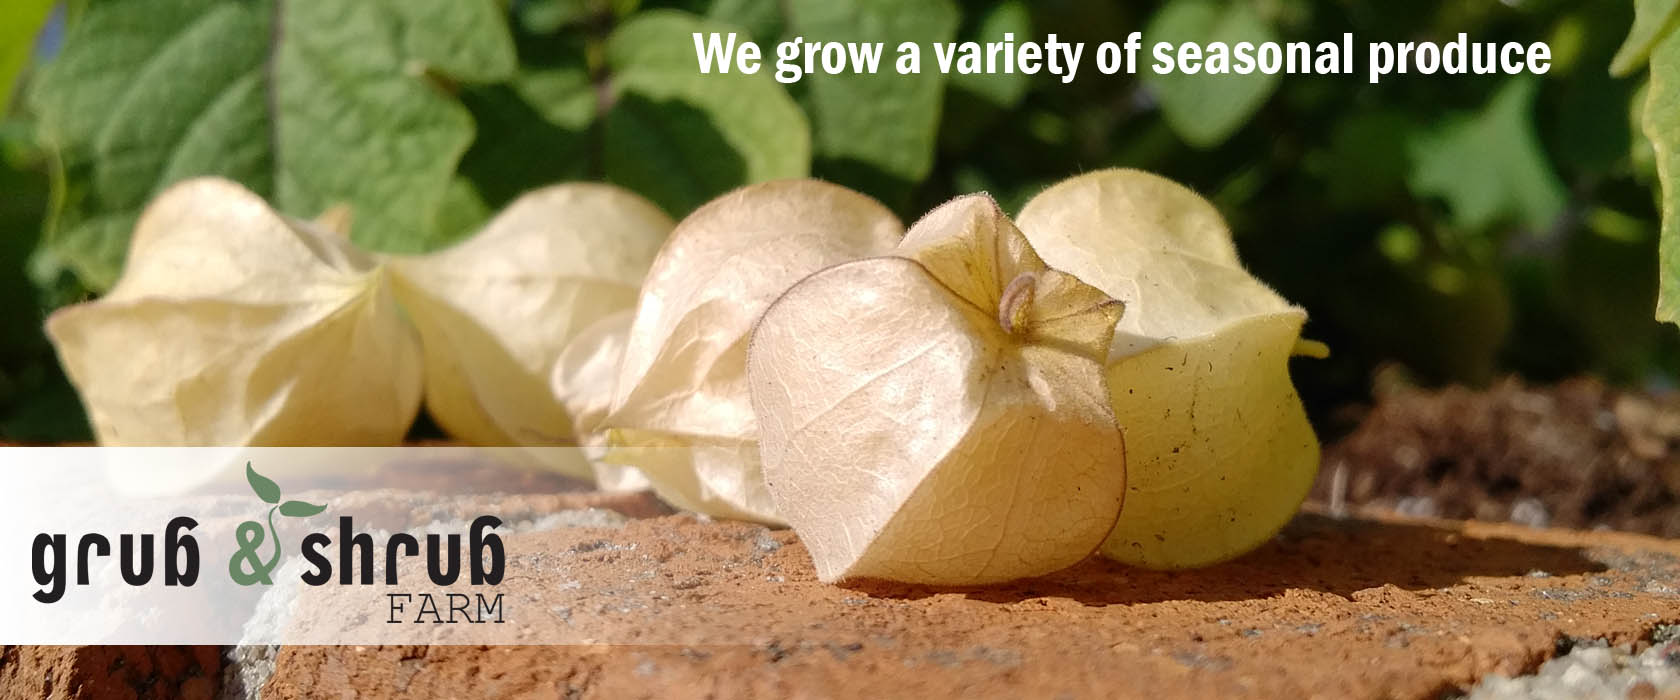 ground cherries are one of the seasonal produce of Grub & Shrub Farm